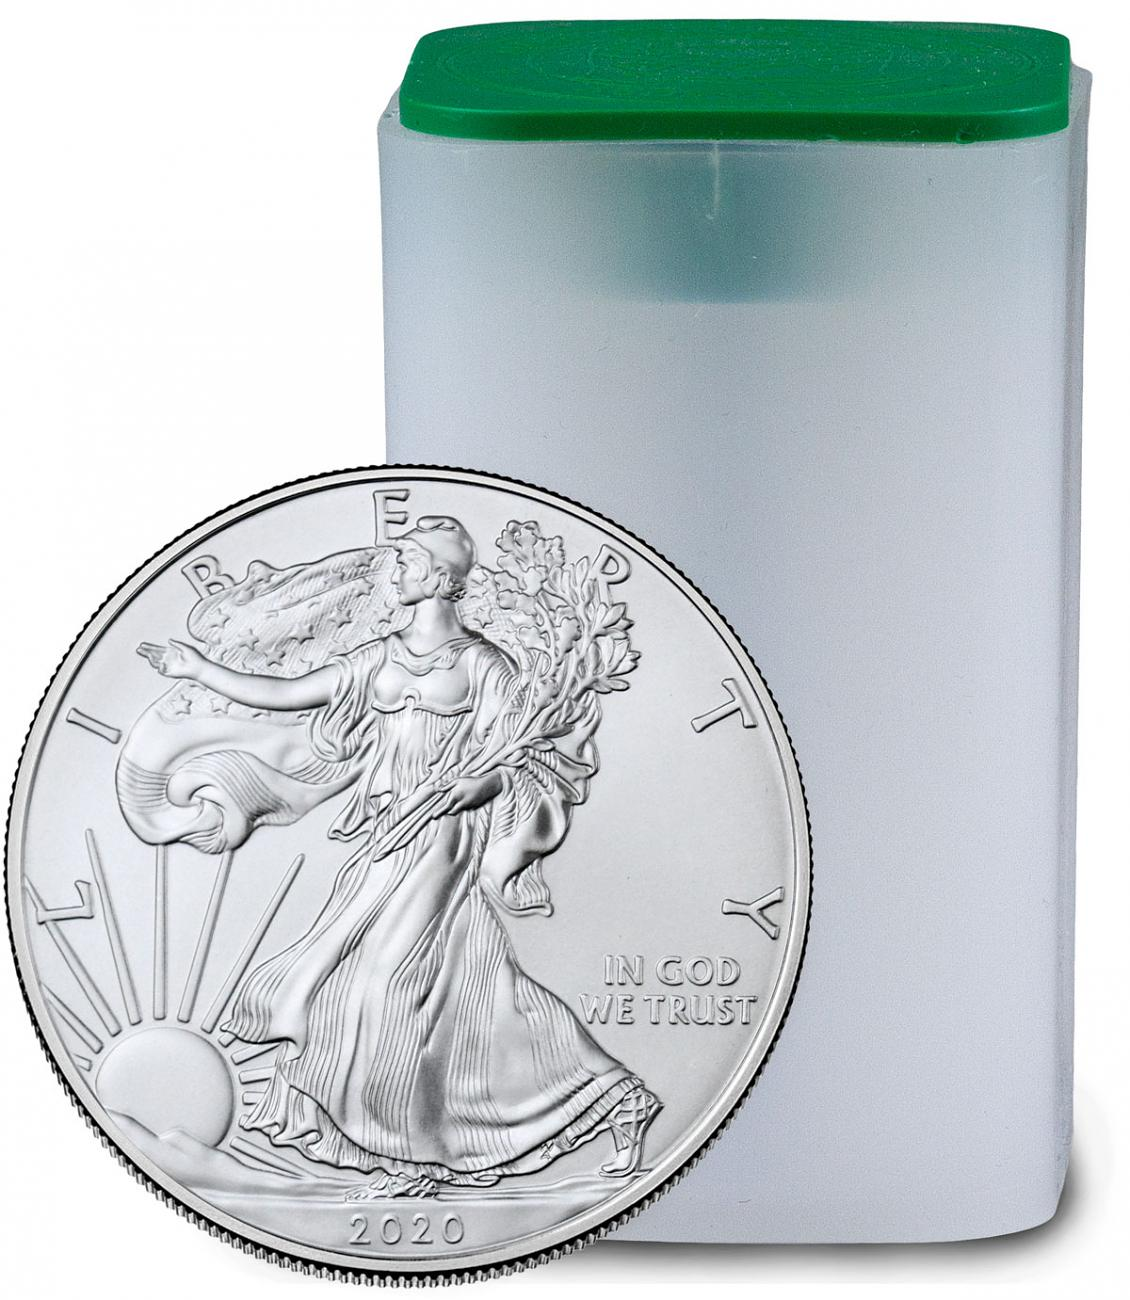 Roll of 20 - 2020 1 oz American Silver Eagle $1 Coins GEM BU